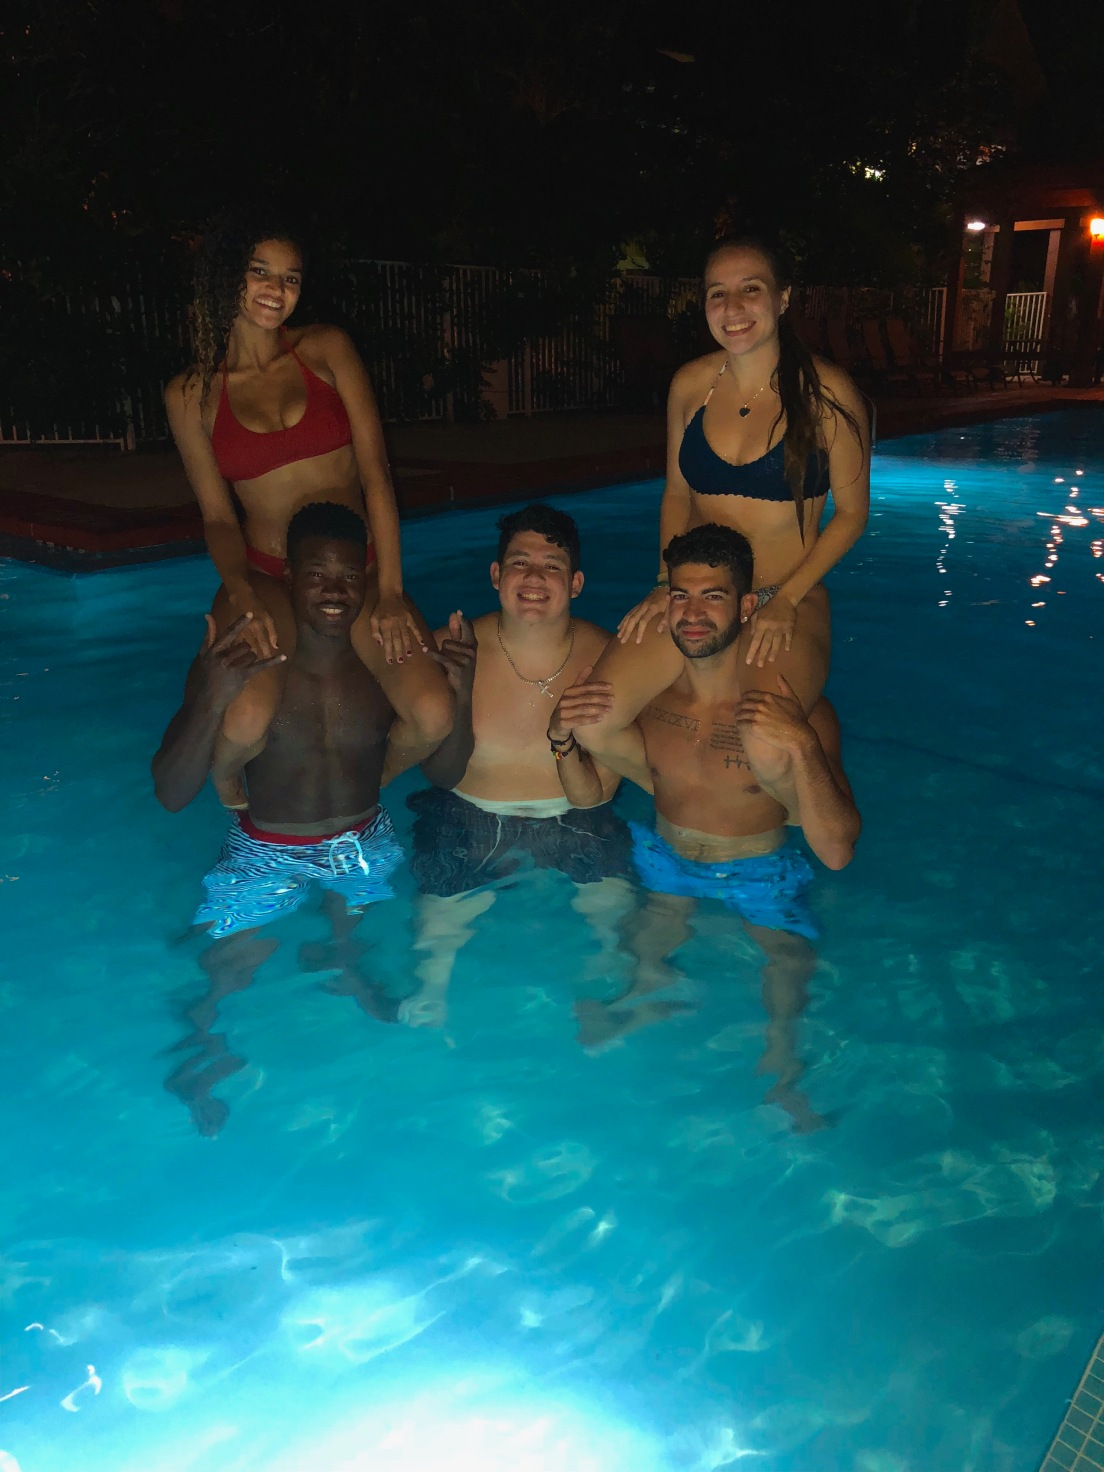 This picture is from my trip to Miami this summer. It was our last night together so we decided to sneak into a pool.